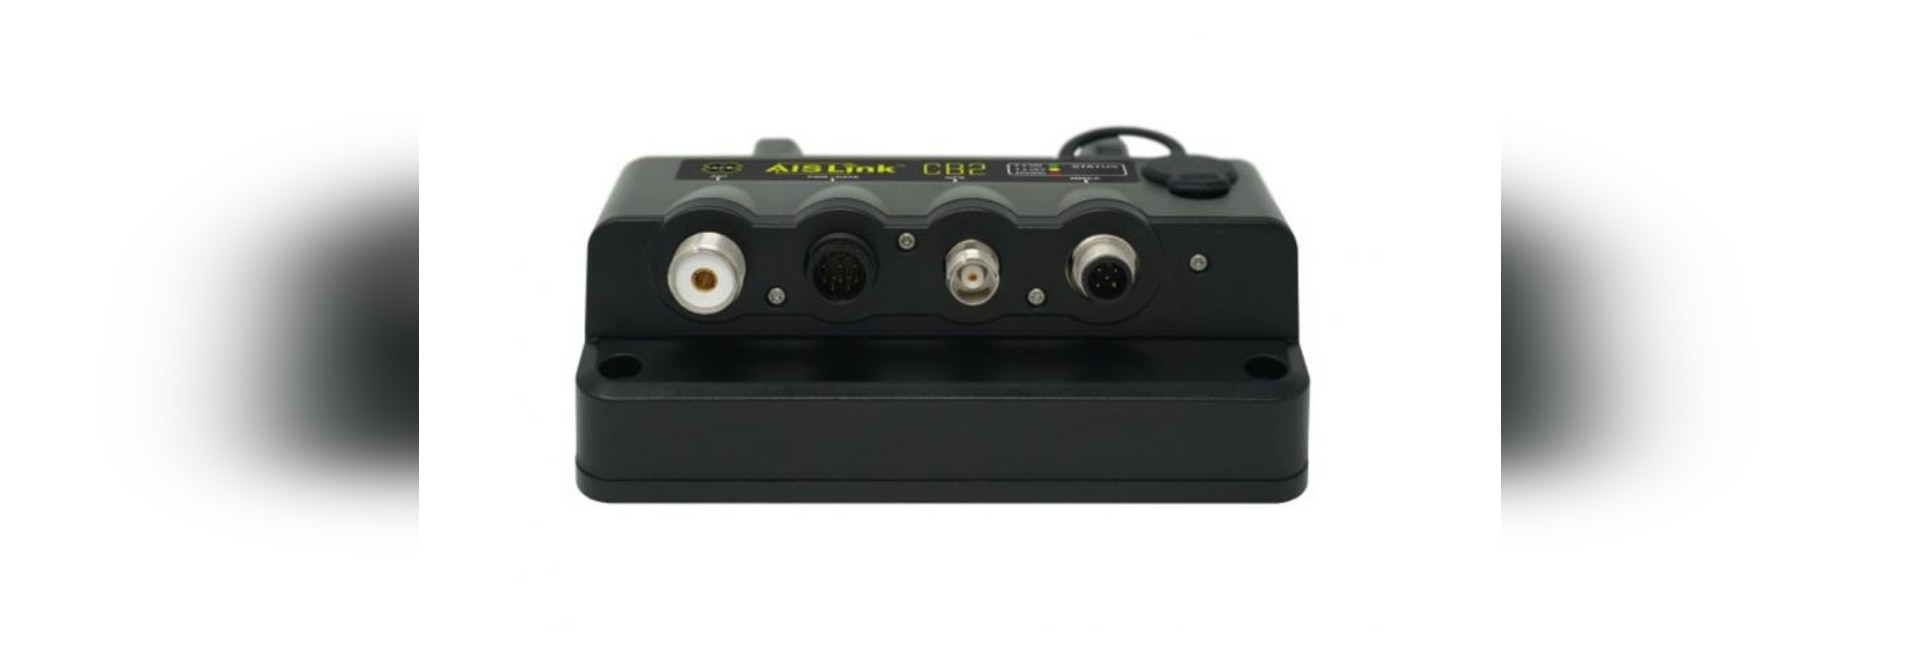 ACR Electronic's new Class B AIS transponder Photo: ACR Electronics